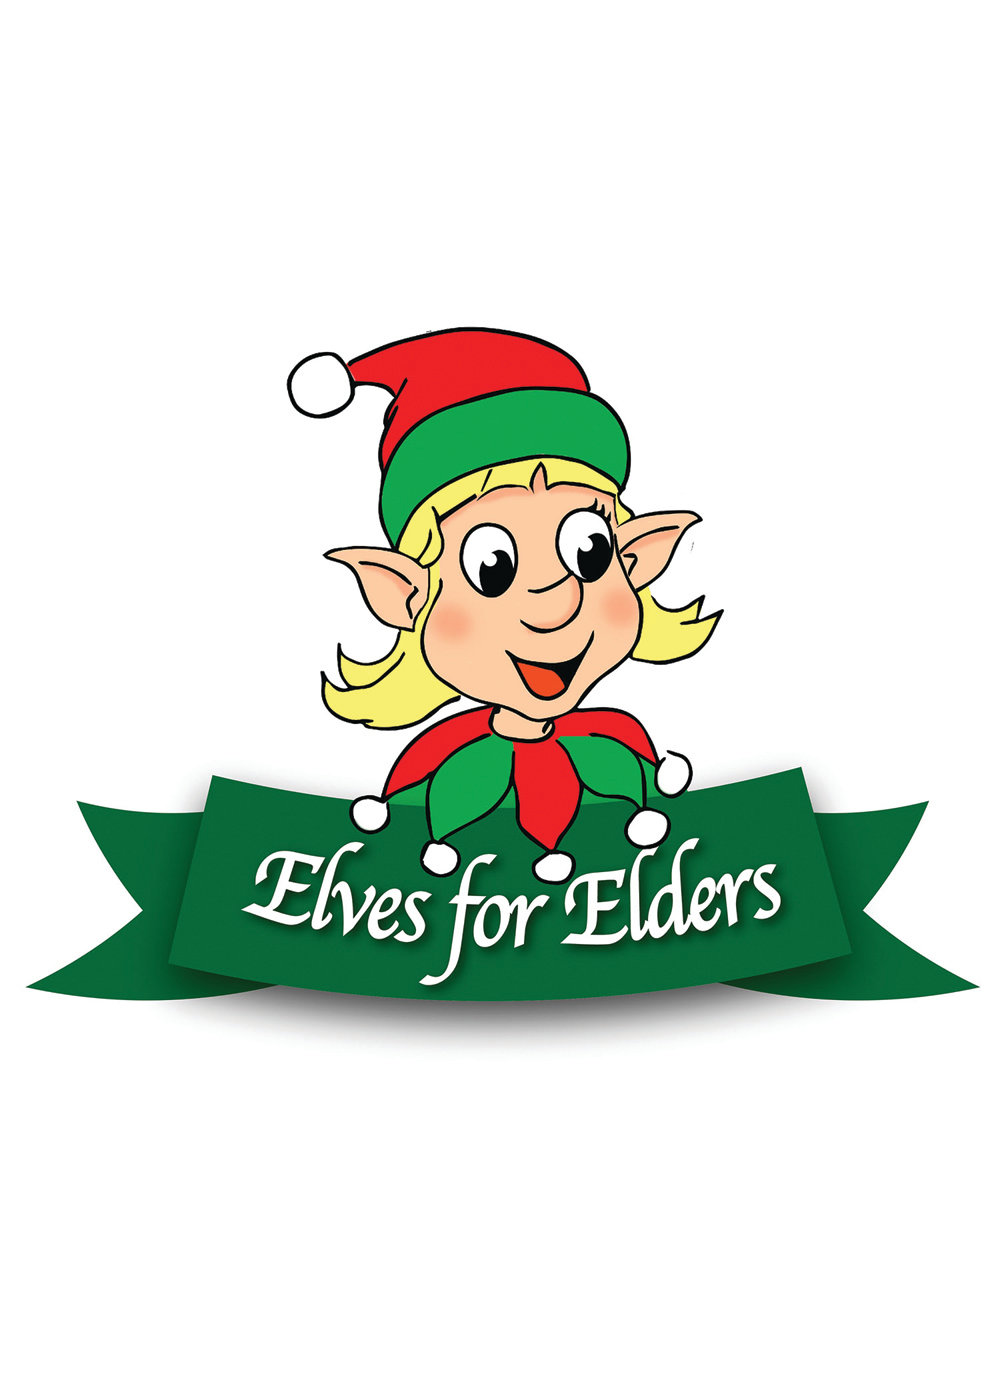 Tis the season to be married clipart vector library download Tis the season to help: Elves for Elders plans July 17 ... vector library download